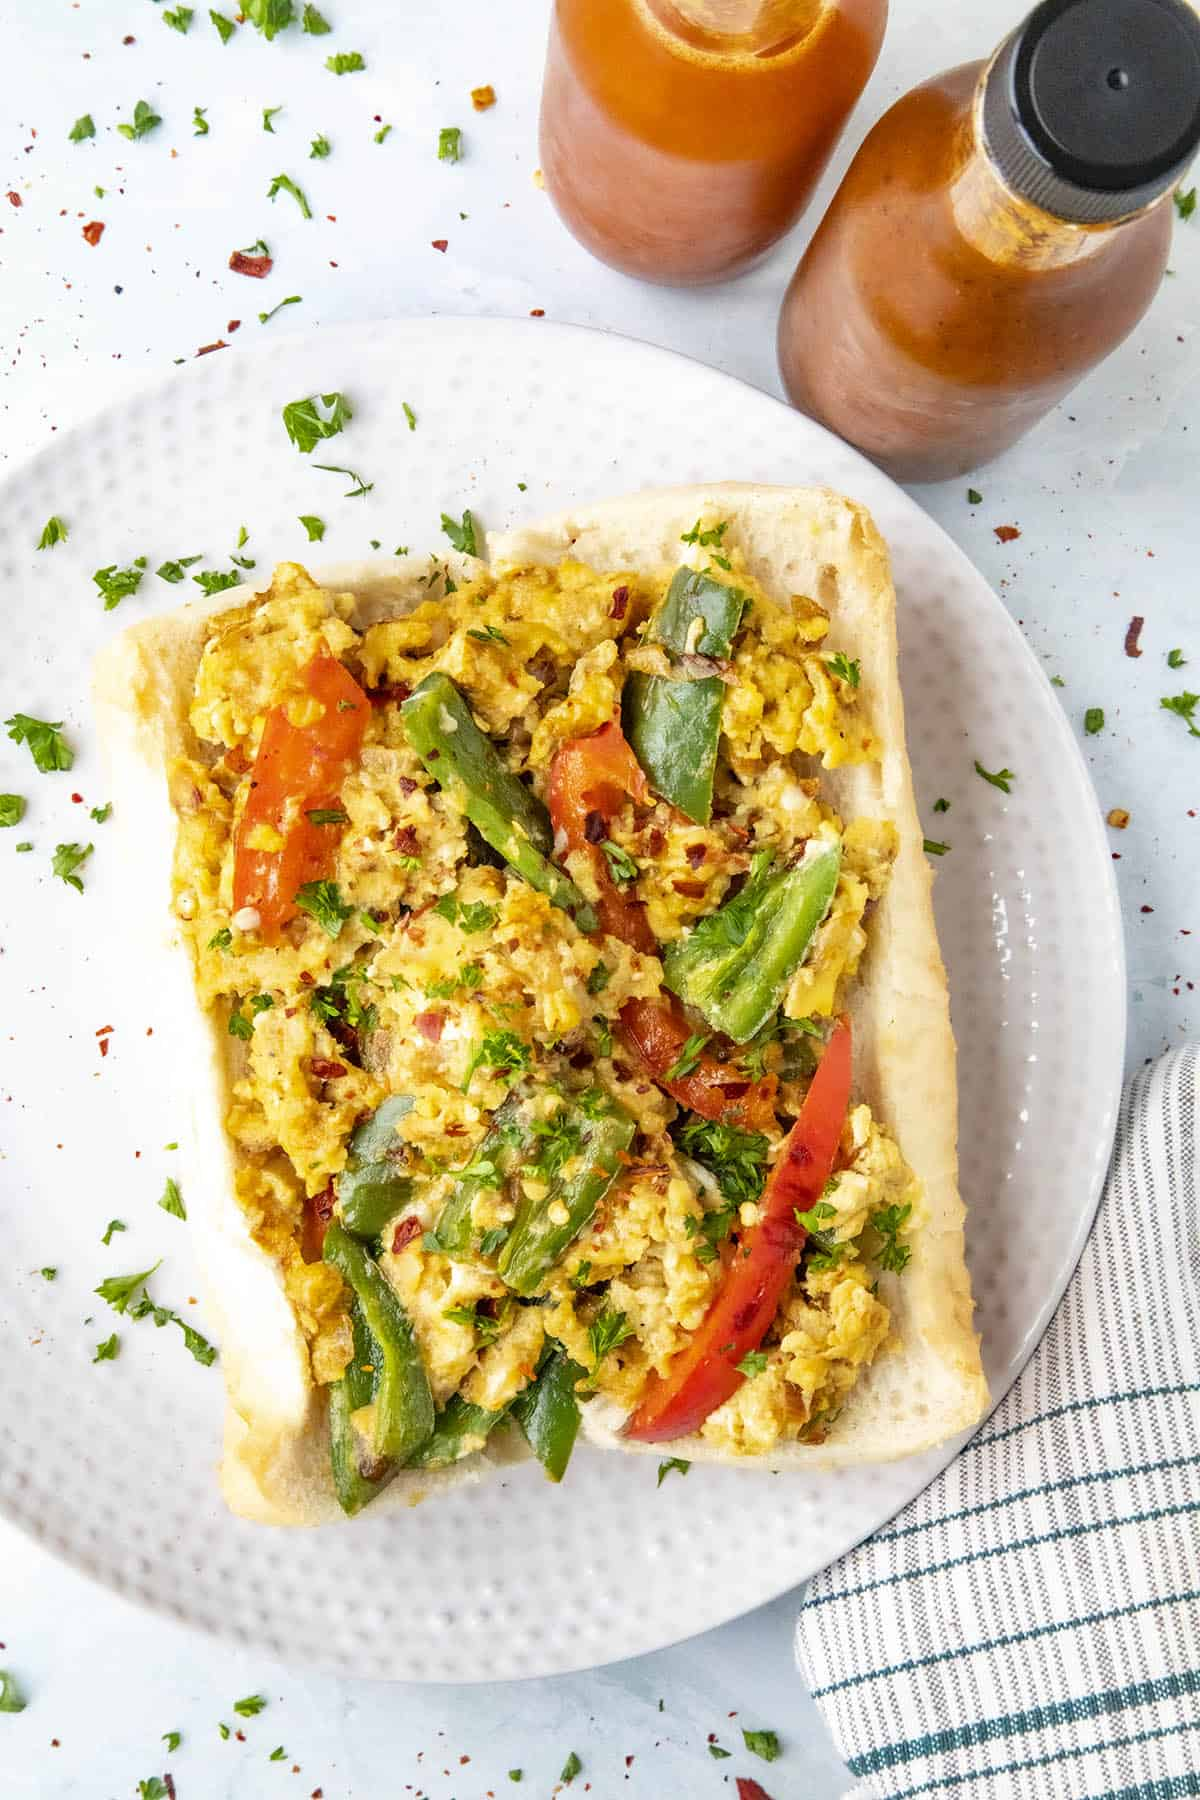 Pepper and Egg Sandwich with lots of peppers and hot sauce